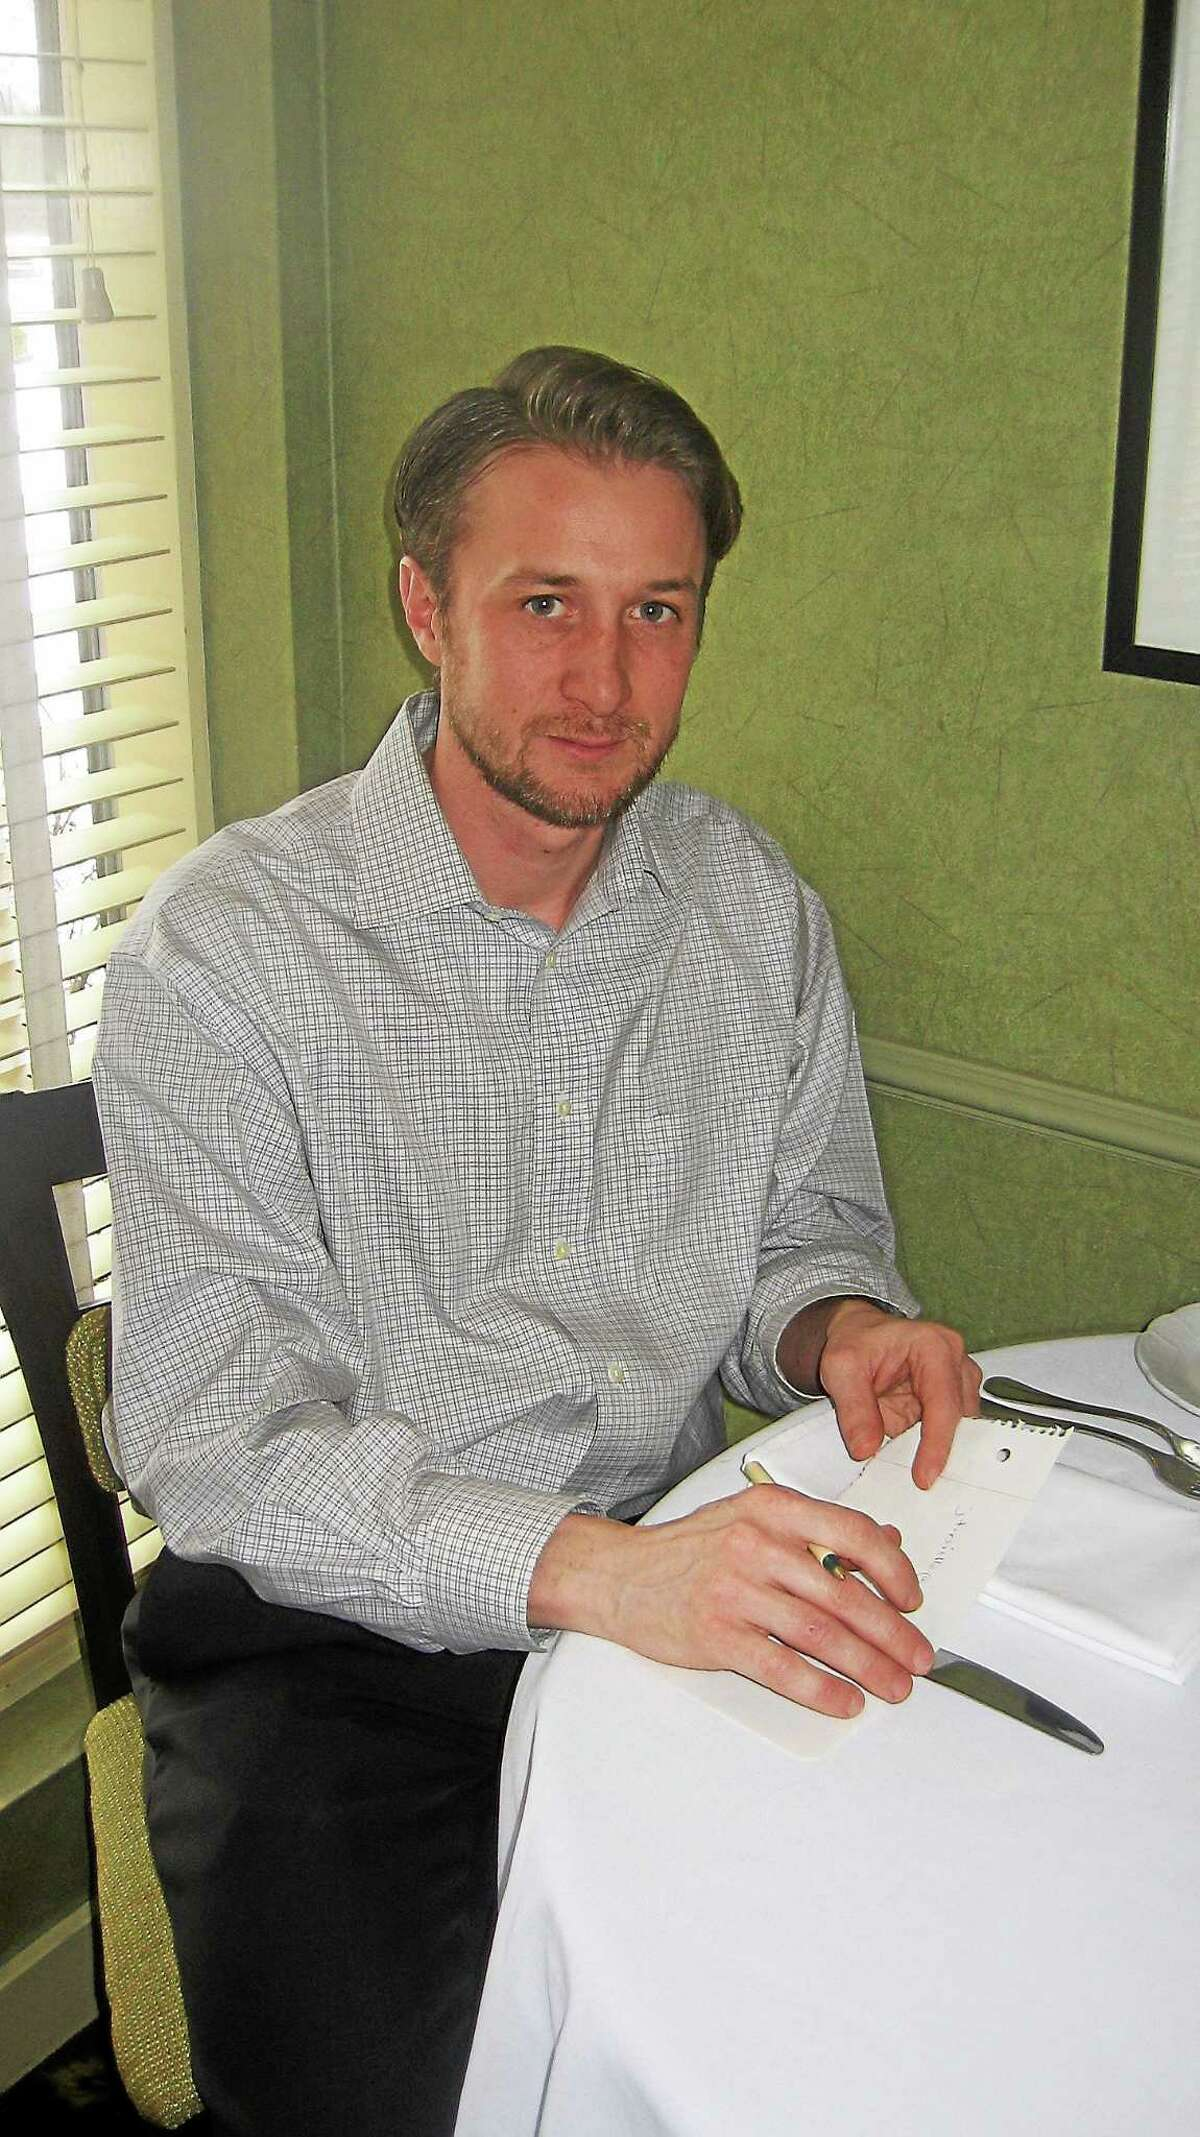 Brandon Scimeca, of East Canaan, serves the dual role as executive chef and food and beverage director at Morgan's Restaurant.